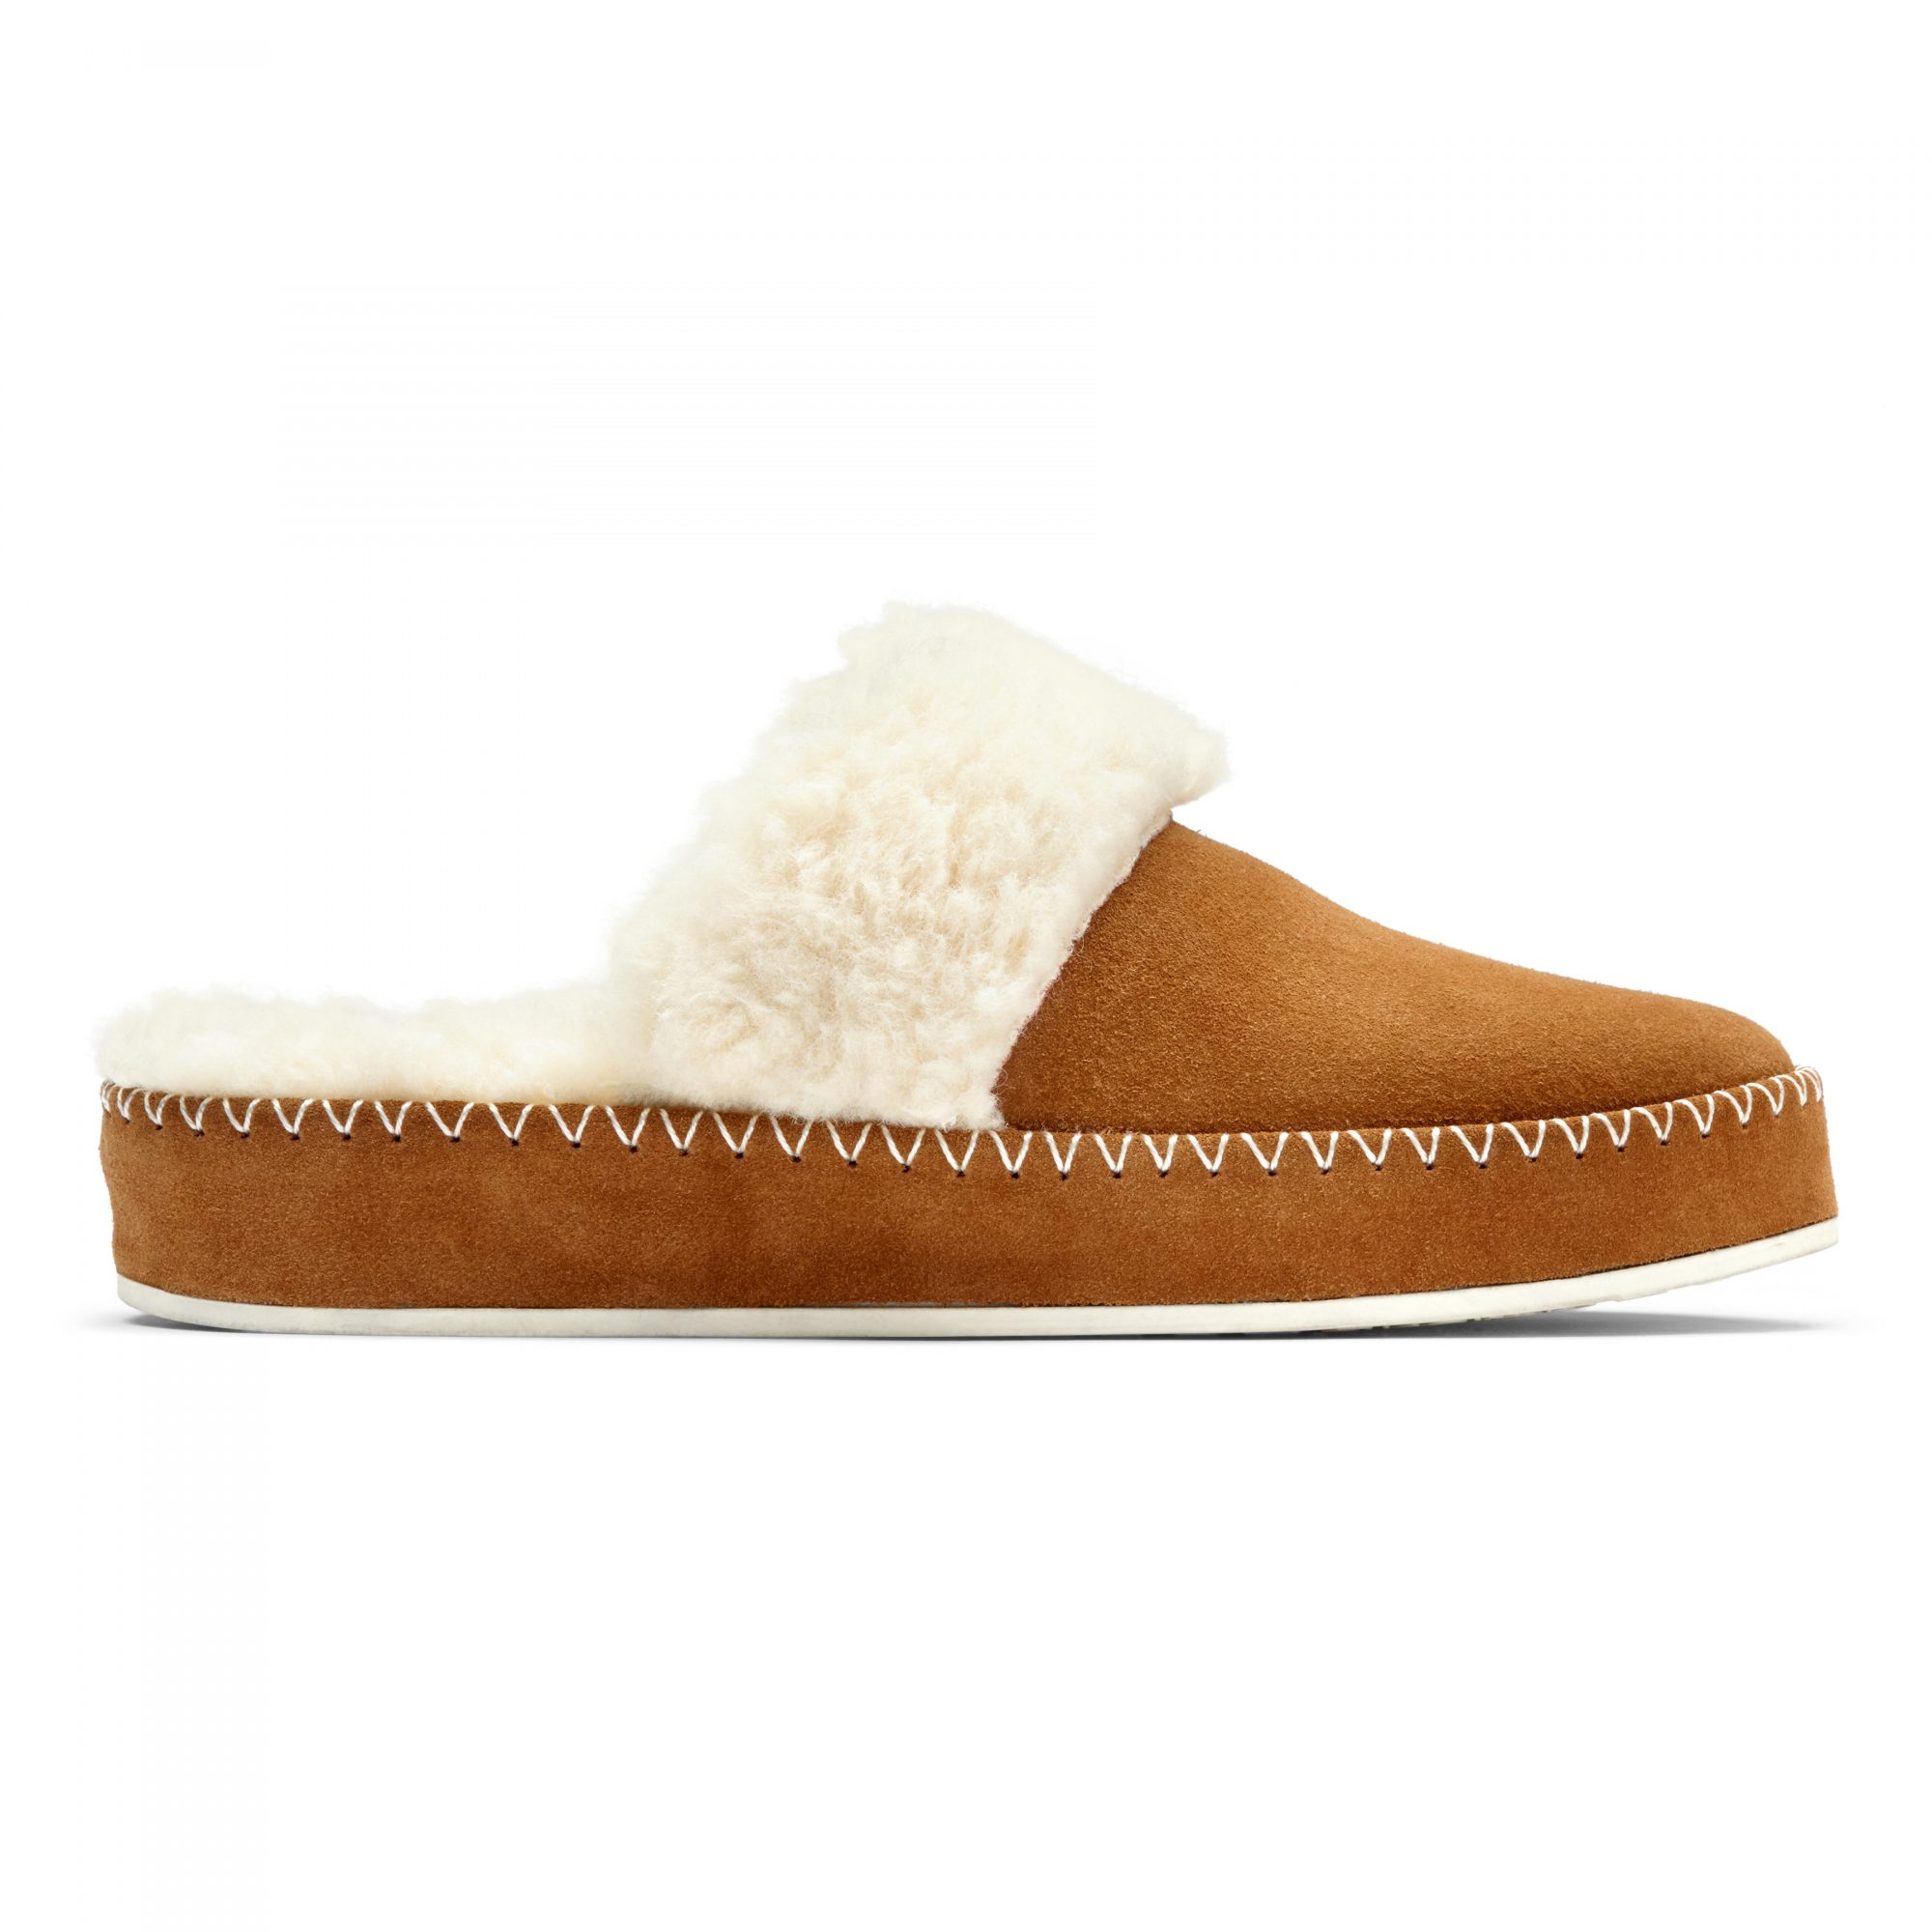 Vionic Women's Marley Slipper